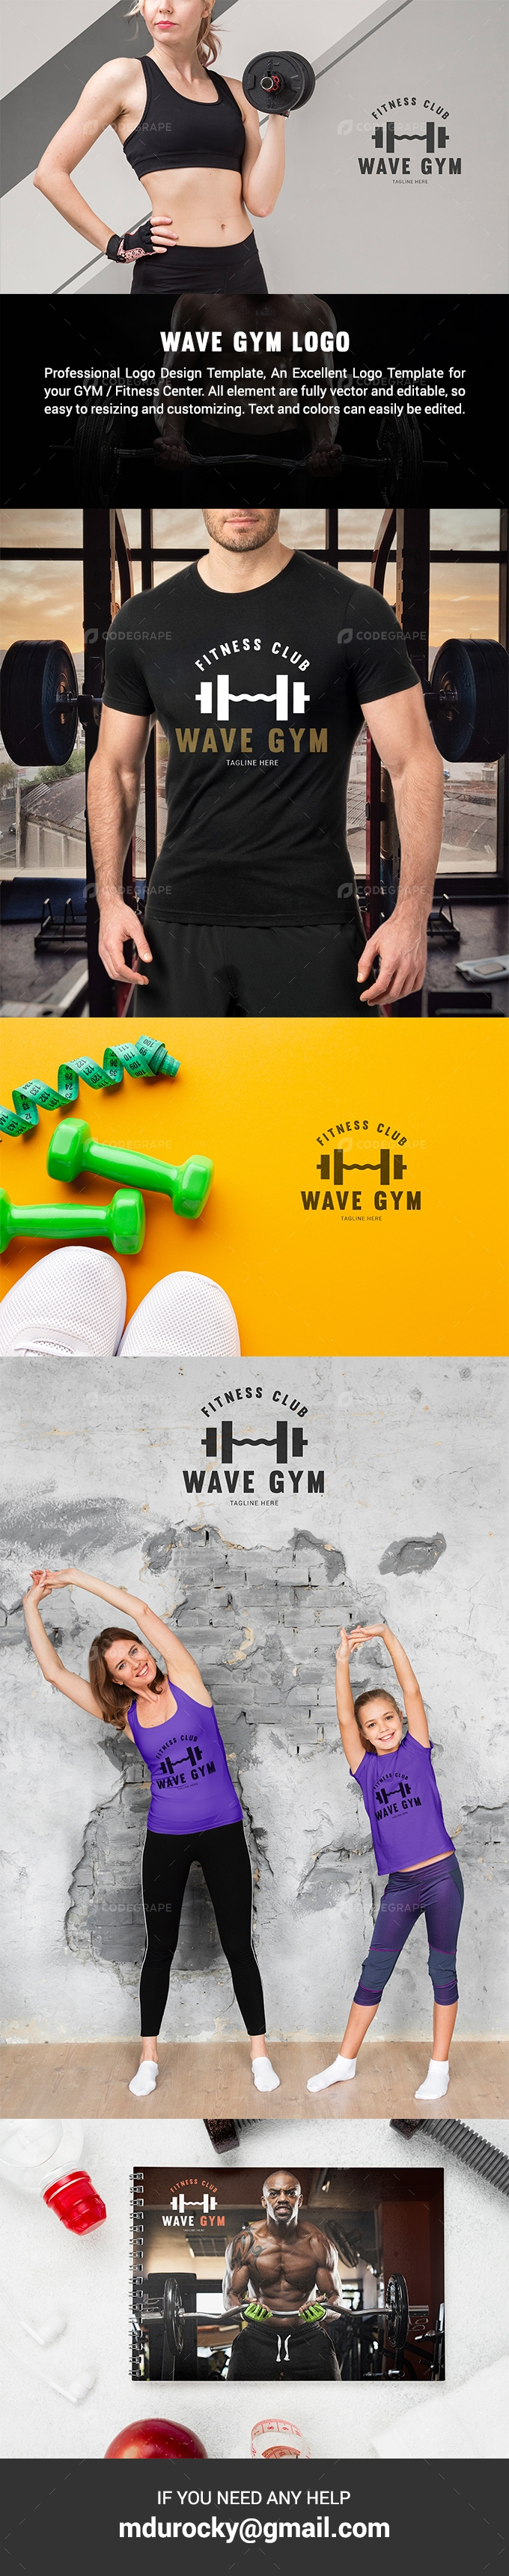 WAVE GYM Logo